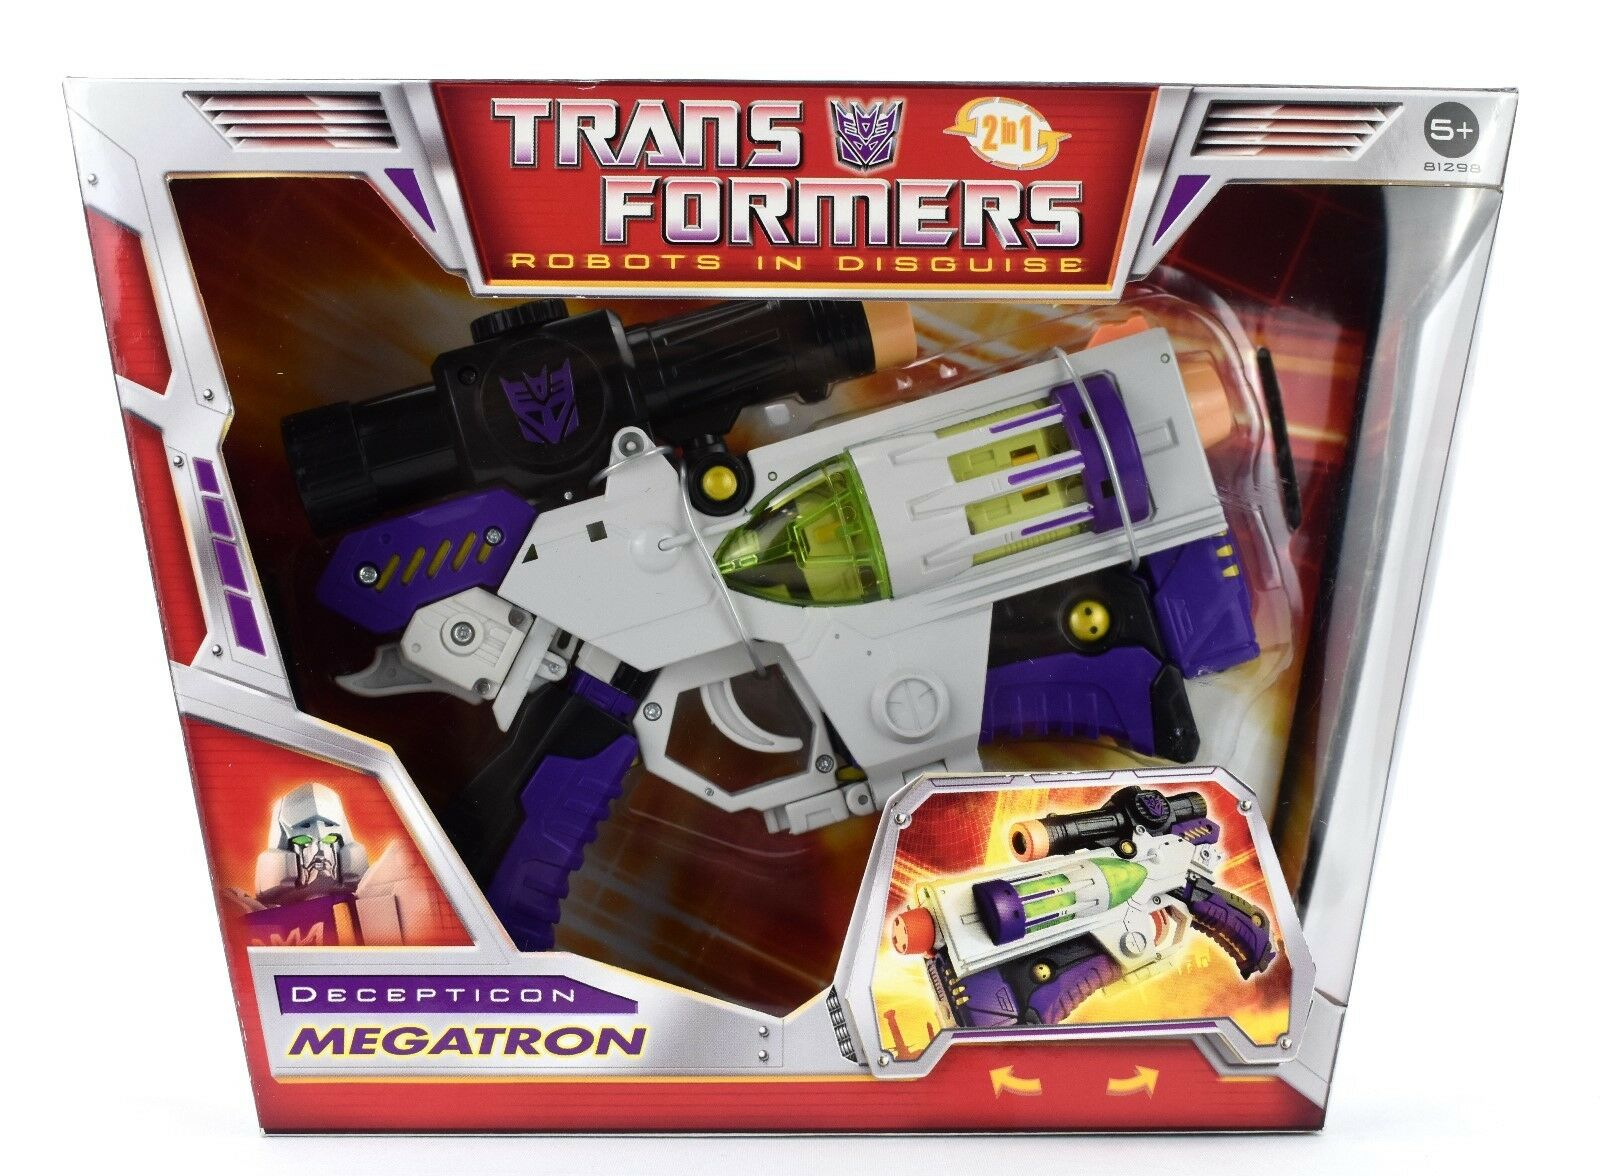 Transformers Robots In Disguise 2 in 1-MEGATRON Voyager Action Figure Set